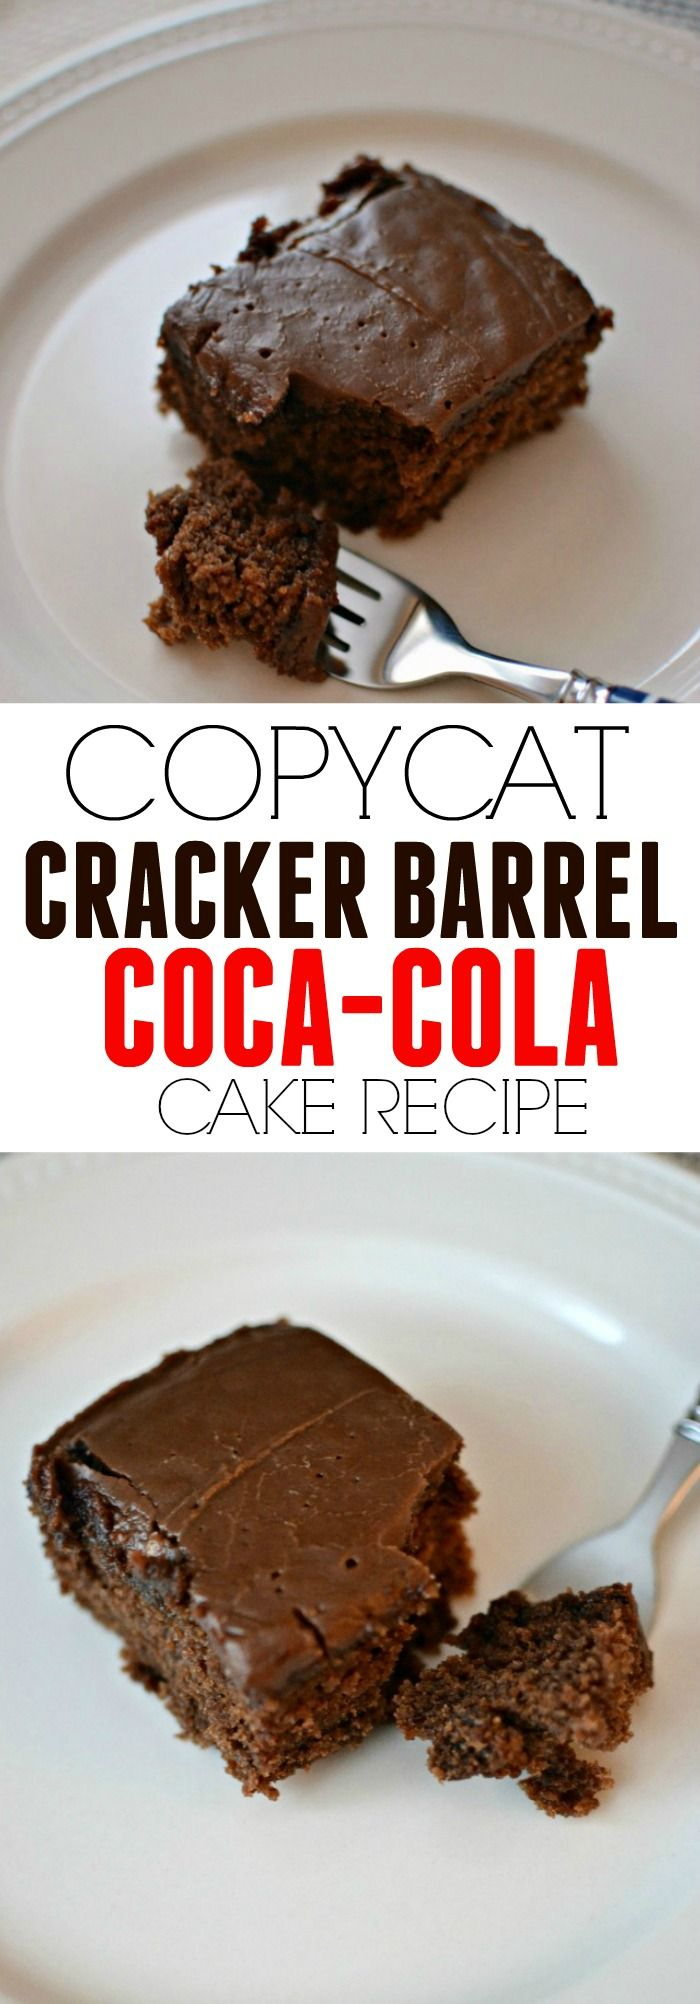 This copycat Cracker Barrel coca cola cake recipe is oh so yummy. Has the best rich chocolate fudge taste. Perfect for a family gathering cake.